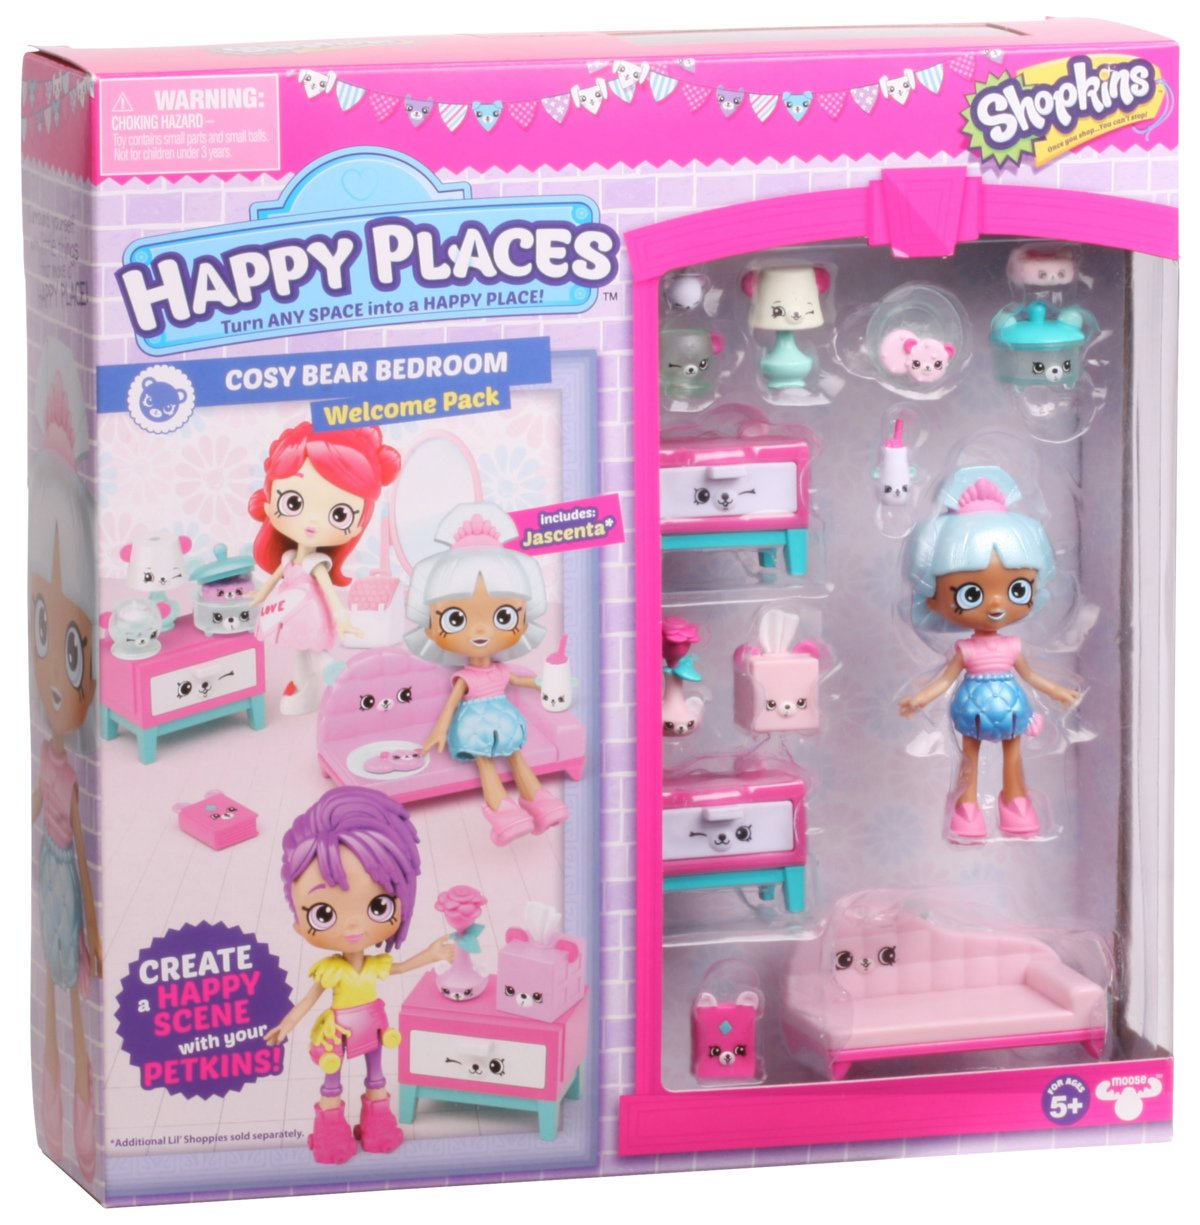 Shopkins Happy Places S3 Welcome Pack Cosy Bear Bedroom Takara Tomy Premium Shop Online Beyblade Shop Premiumtoy My Our Online Shop Offers Wide Range Of Tomica Plarail Beyblade